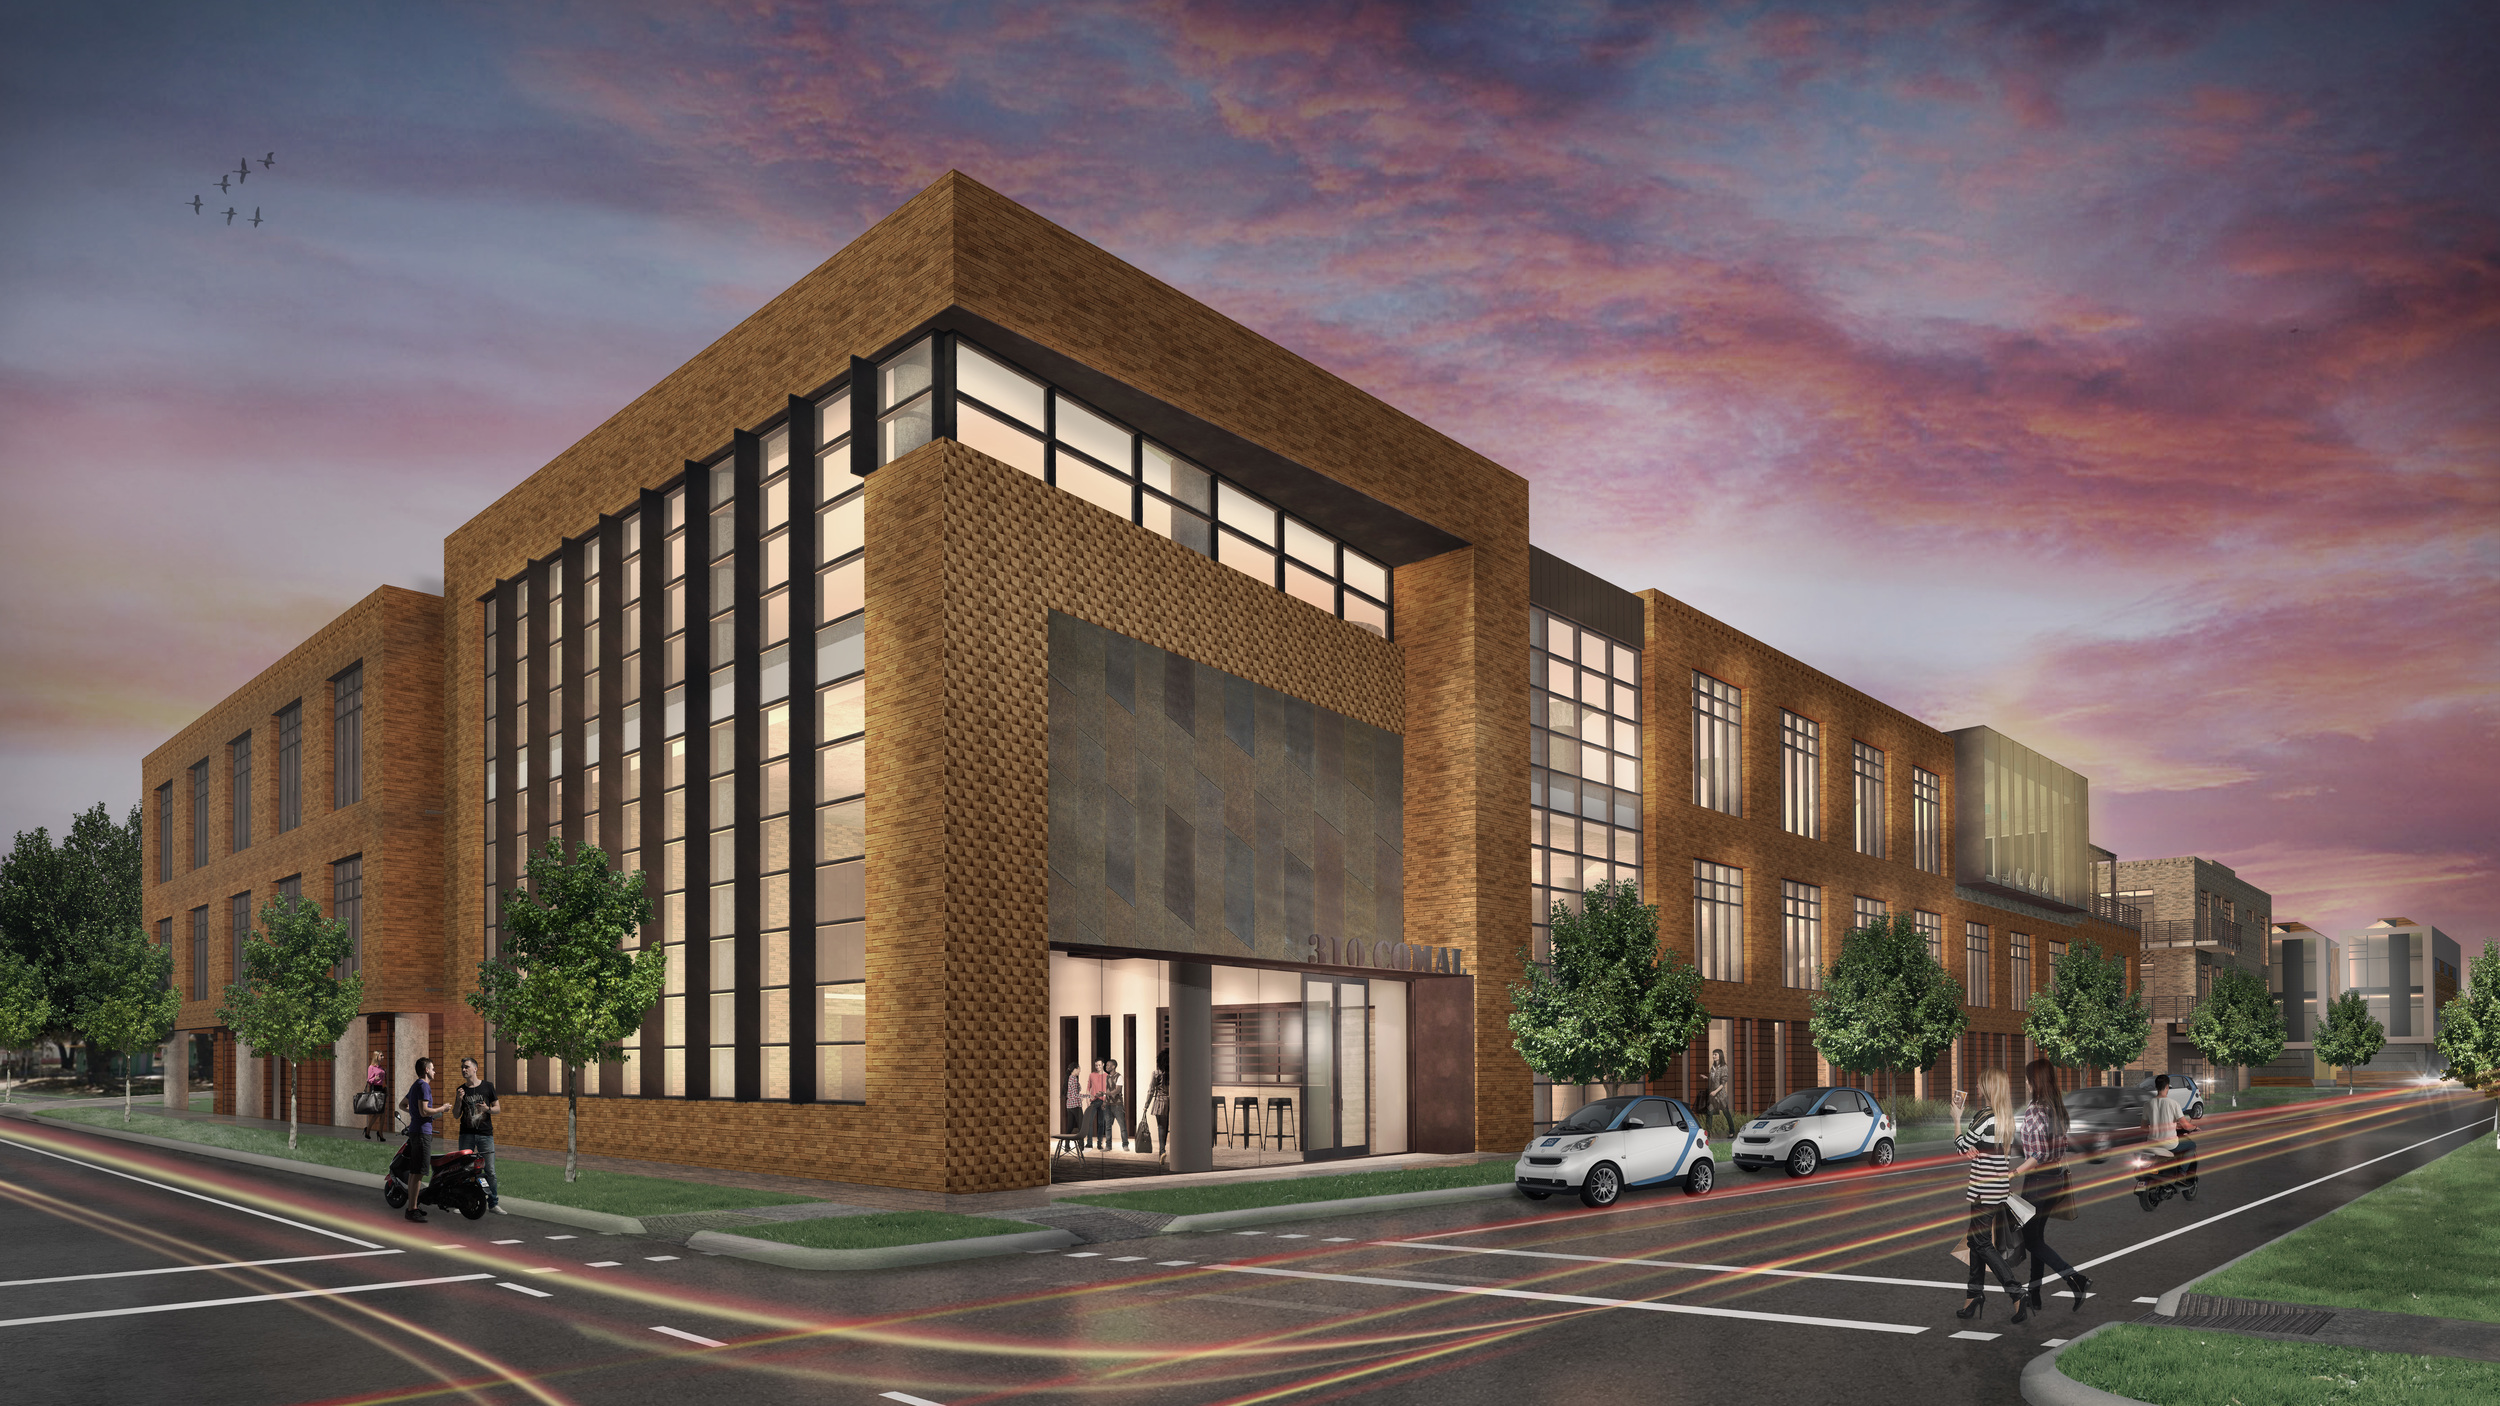 The latest rendering from Sixthriver Architects presents an interesting interplay of windows and bricks that captivate the eye, especially at twilight.